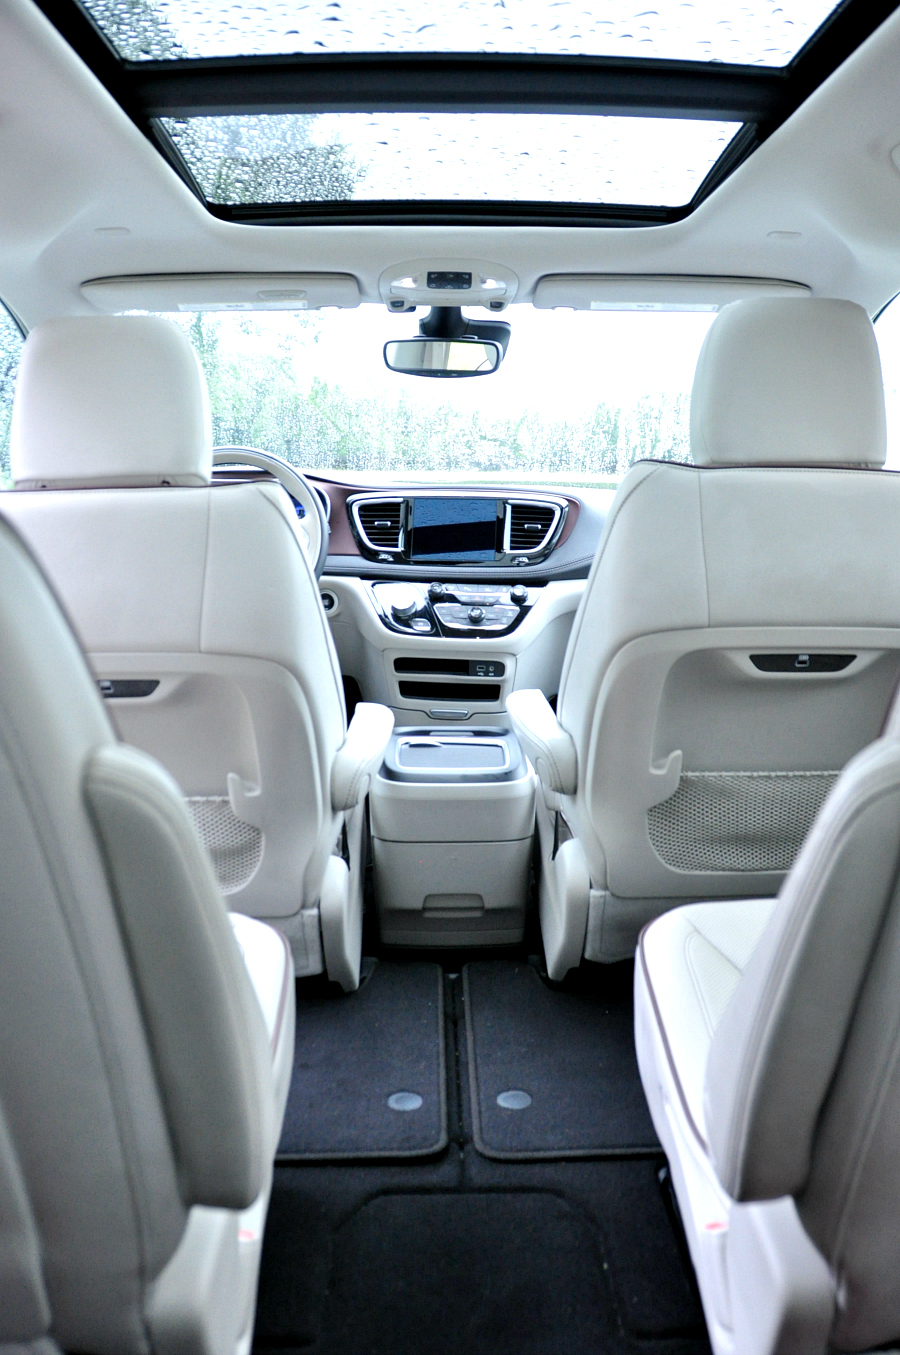 inside the Chrysler Pacifica 2017 Review #Pacifica #DriveShop #ad